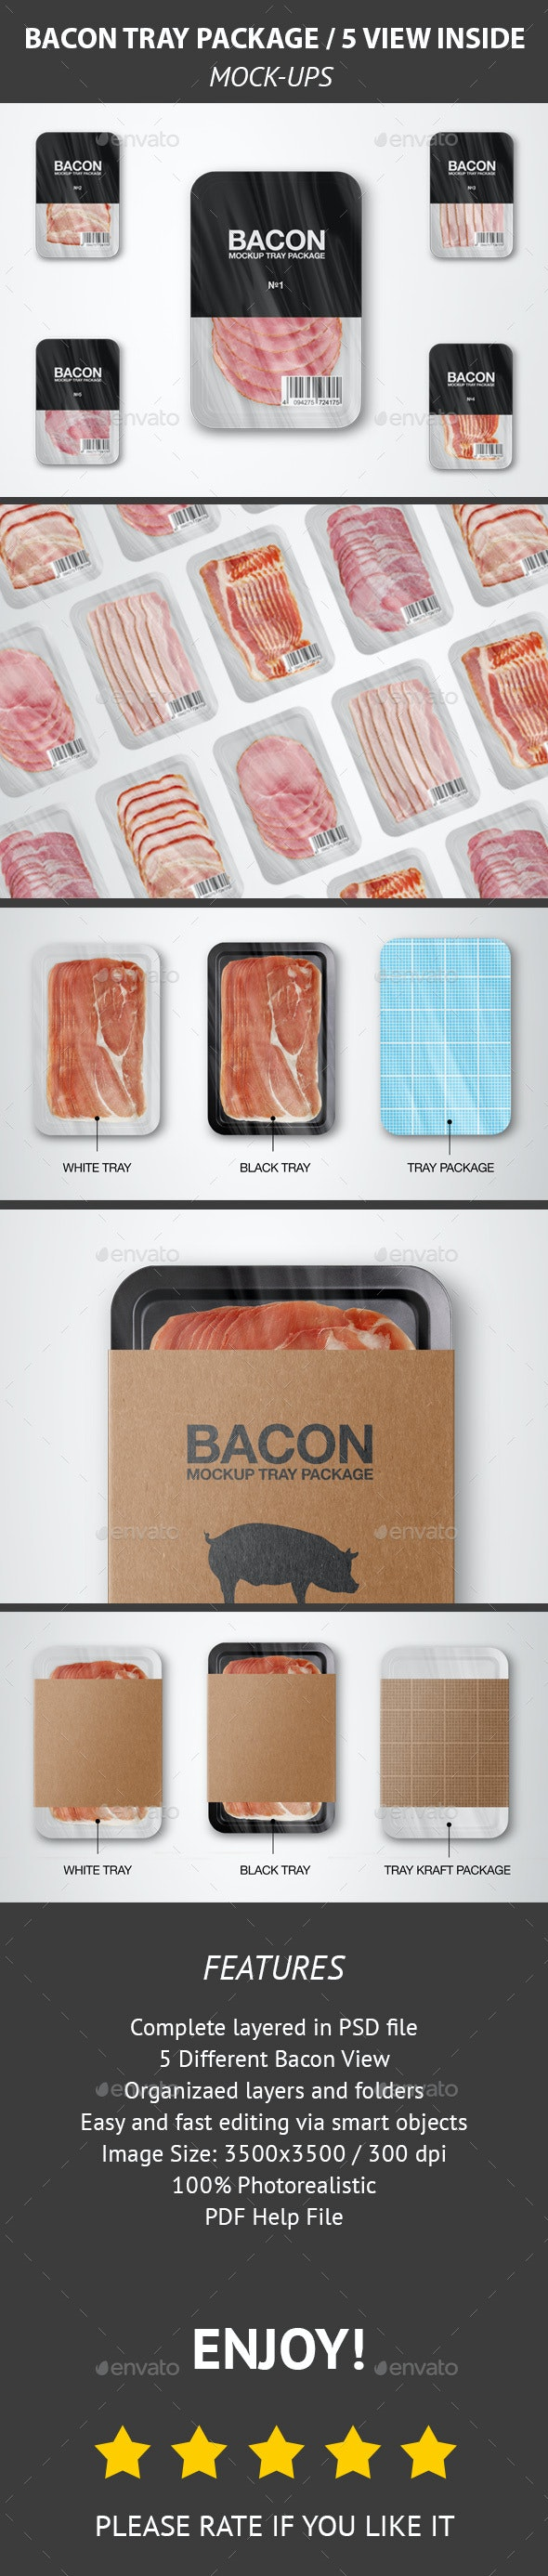 Bacon Tray Package MockUp - Product Mock-Ups Graphics